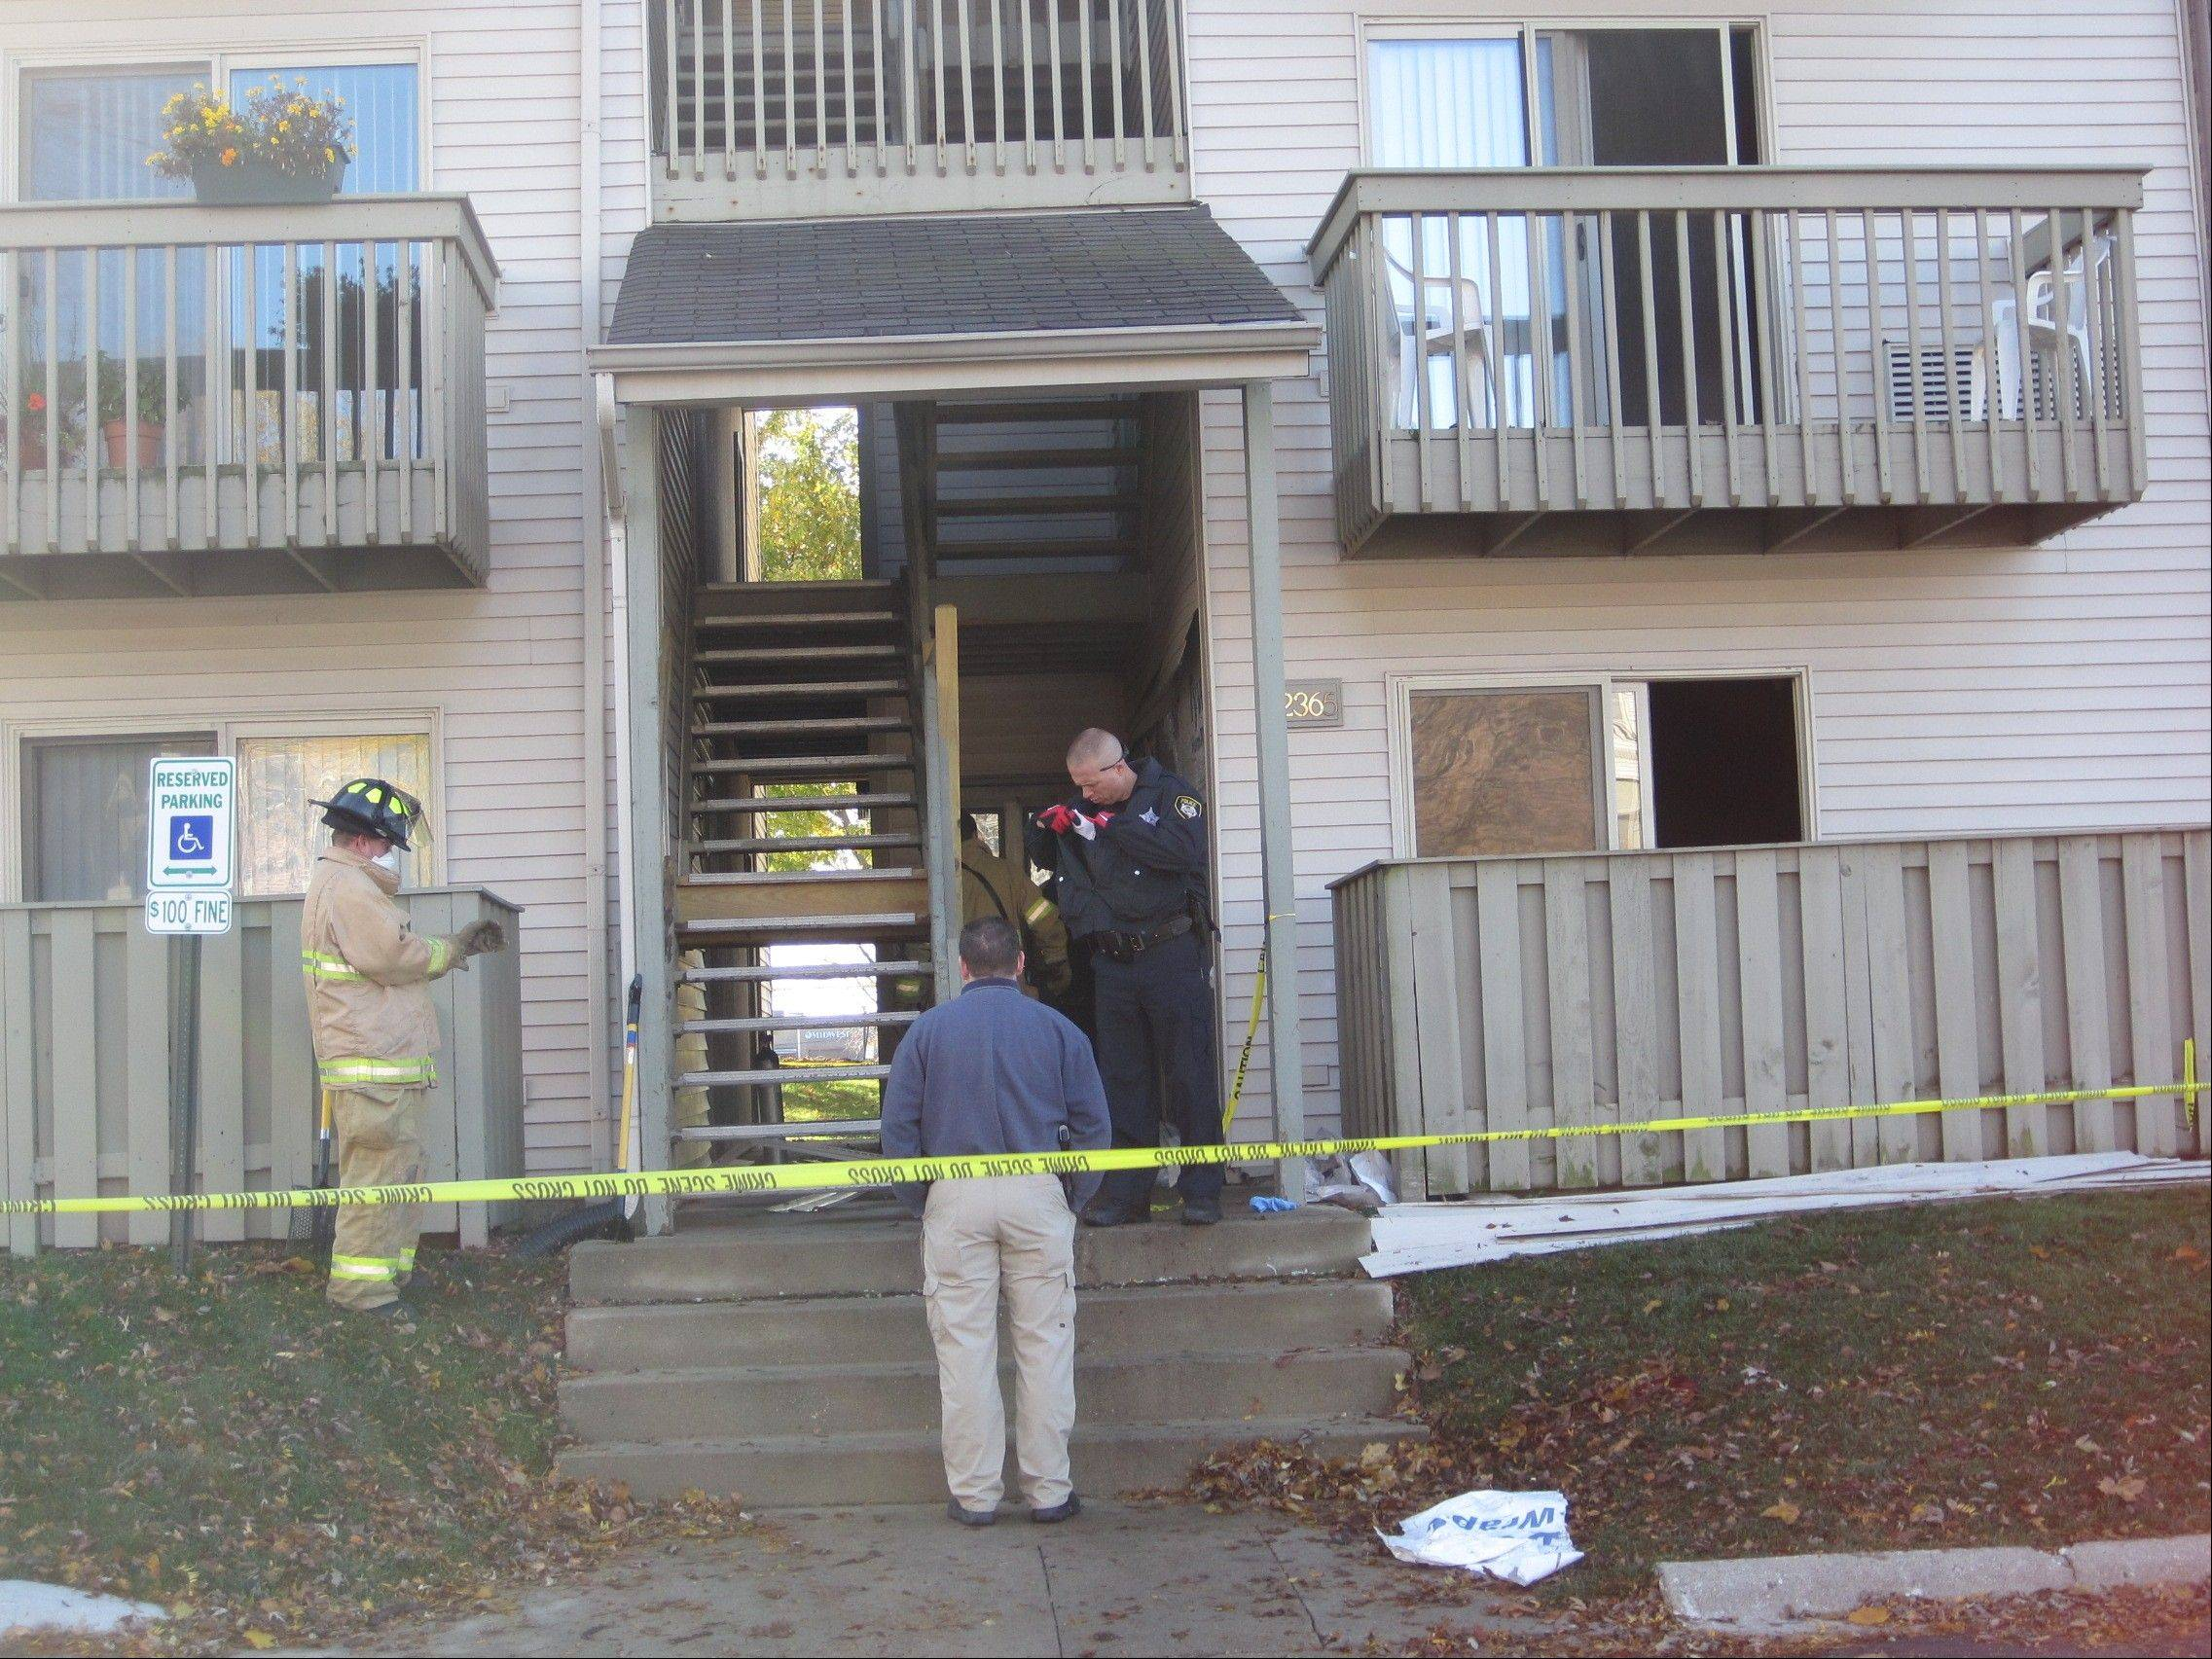 Members of the Mount Prospect Fire Department and investigators from the Mount Prospect Police Department and the Office of the State Fire Marshal were outside an apartment where a 69-year-old woman died after a fire early Saturday.